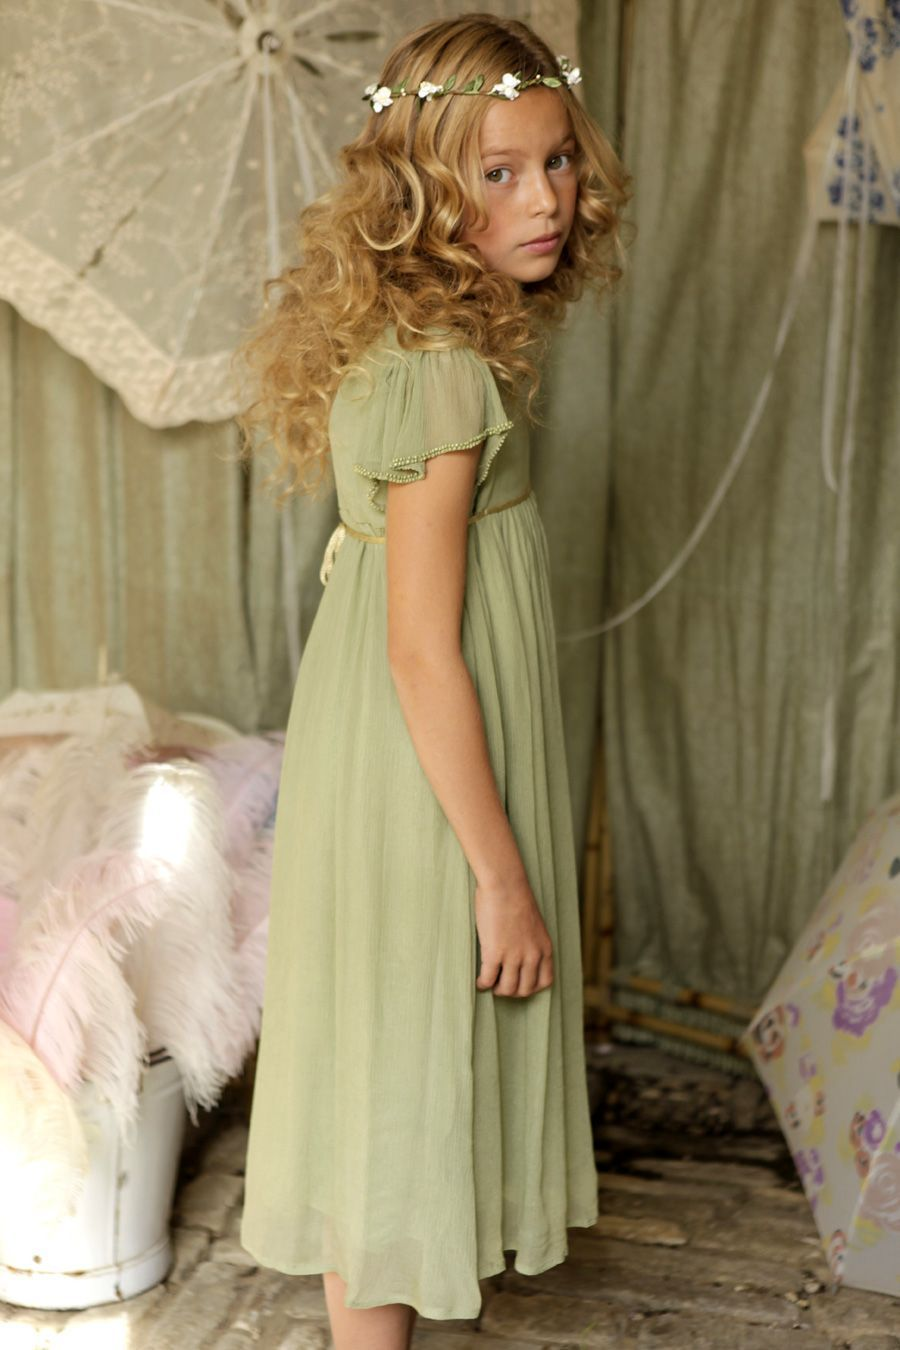 Emma Dress - Sage Green #sagegreendress Emma Dress - Sage Green #sagegreendress Emma Dress - Sage Green #sagegreendress Emma Dress - Sage Green #sagegreendress Emma Dress - Sage Green #sagegreendress Emma Dress - Sage Green #sagegreendress Emma Dress - Sage Green #sagegreendress Emma Dress - Sage Green #sagegreendress Emma Dress - Sage Green #sagegreendress Emma Dress - Sage Green #sagegreendress Emma Dress - Sage Green #sagegreendress Emma Dress - Sage Green #sagegreendress Emma Dress - Sage Gr #sagegreendress